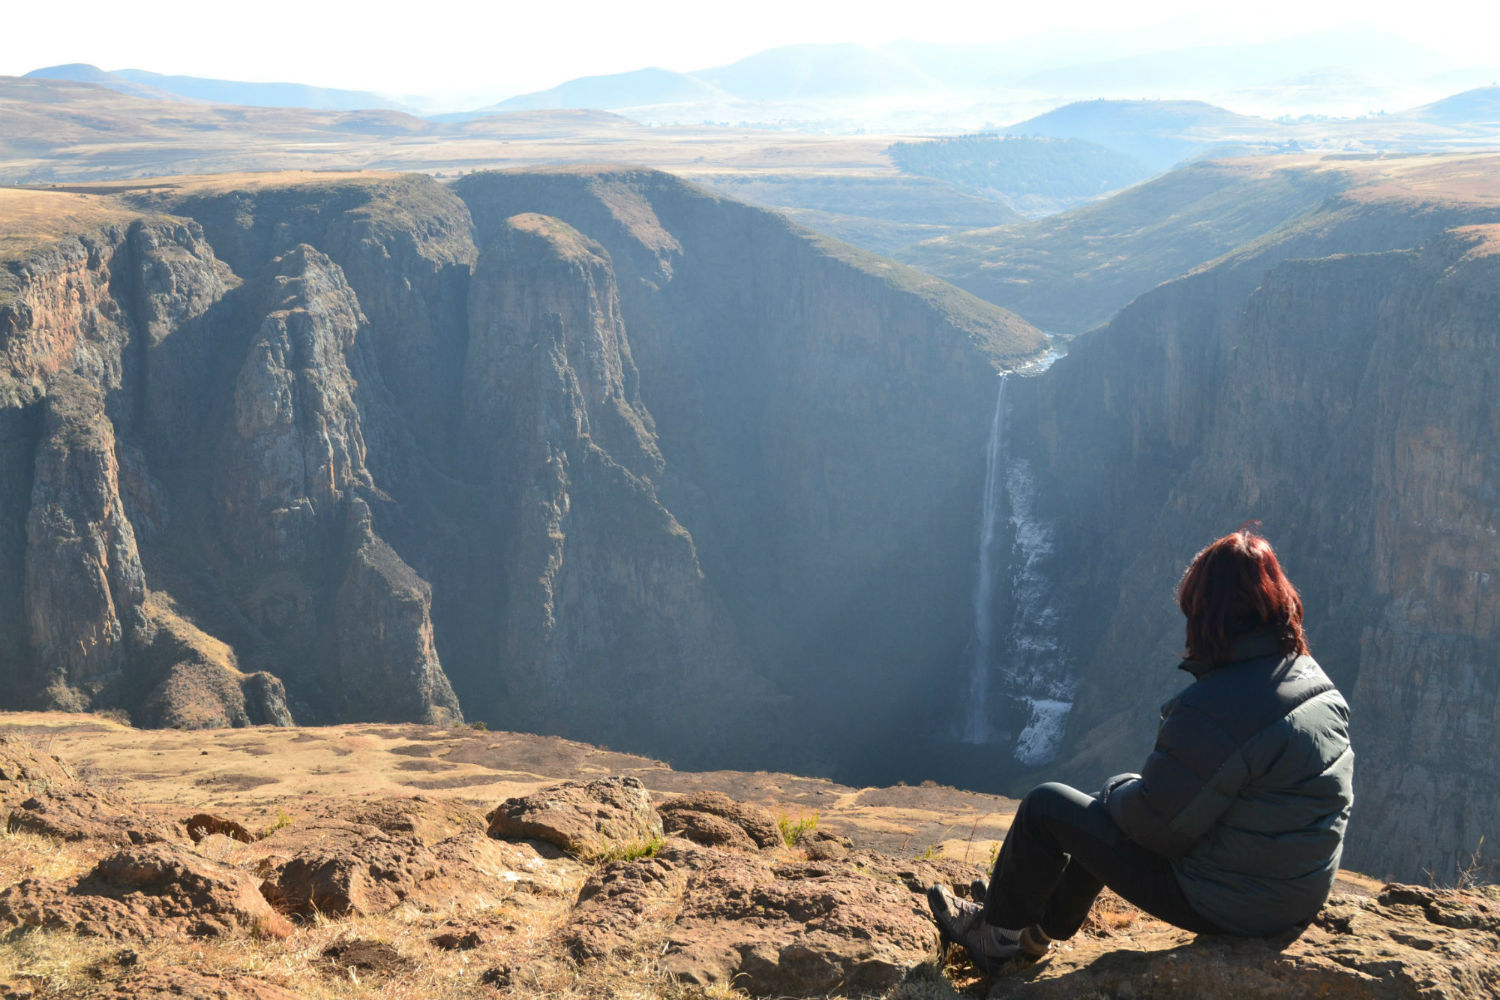 Overland 4x4 tours of Lesotho